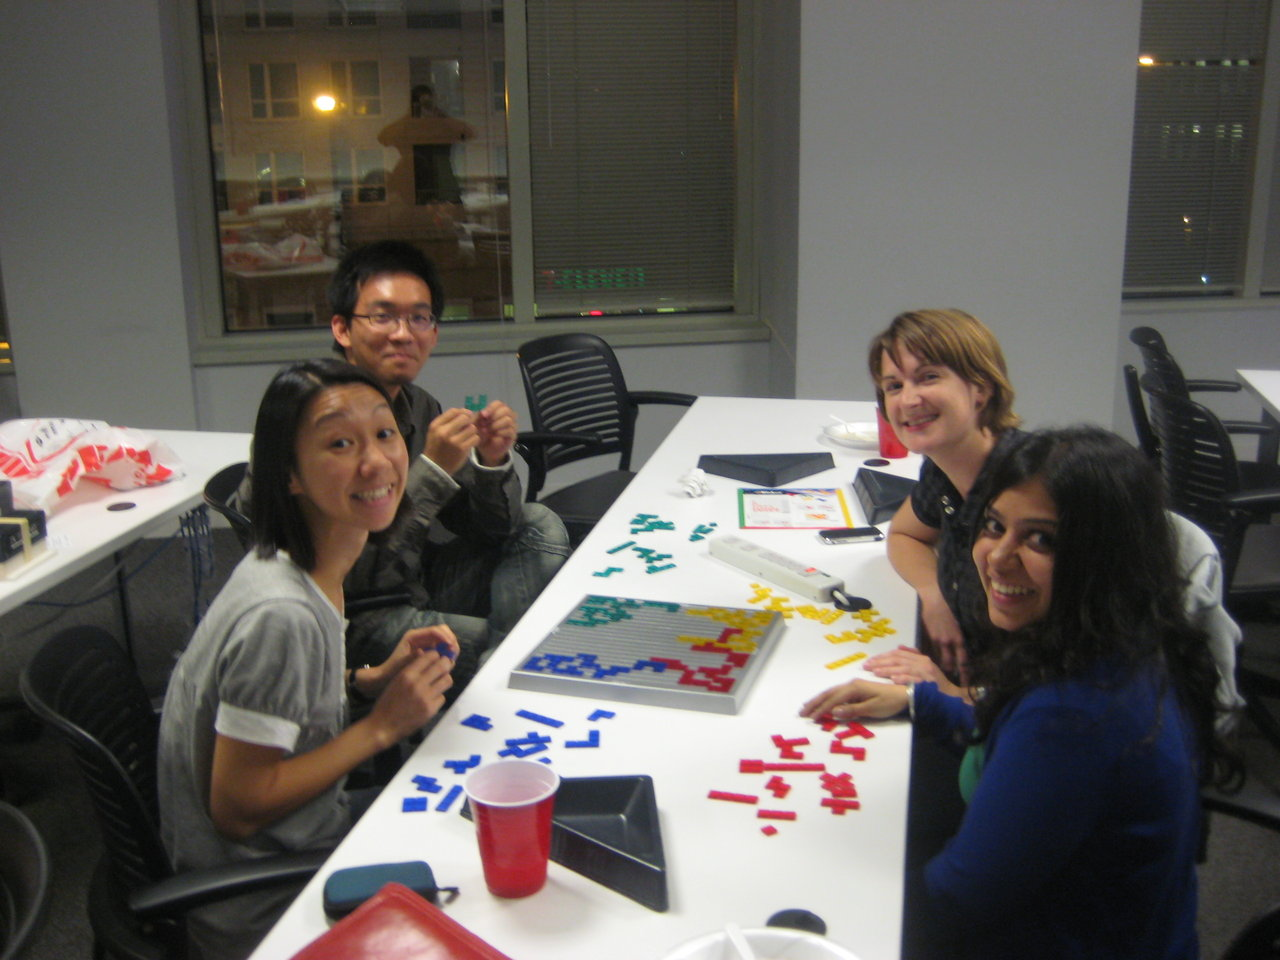 socialID sponsored Games Night with some Thai food and board games tonight. After a long meeting in Systems, it was good to take my mind off school work for a few hours. There was a game of Bloktus, speed Scrabble and even Mah Jong going on! Check out the pictures.